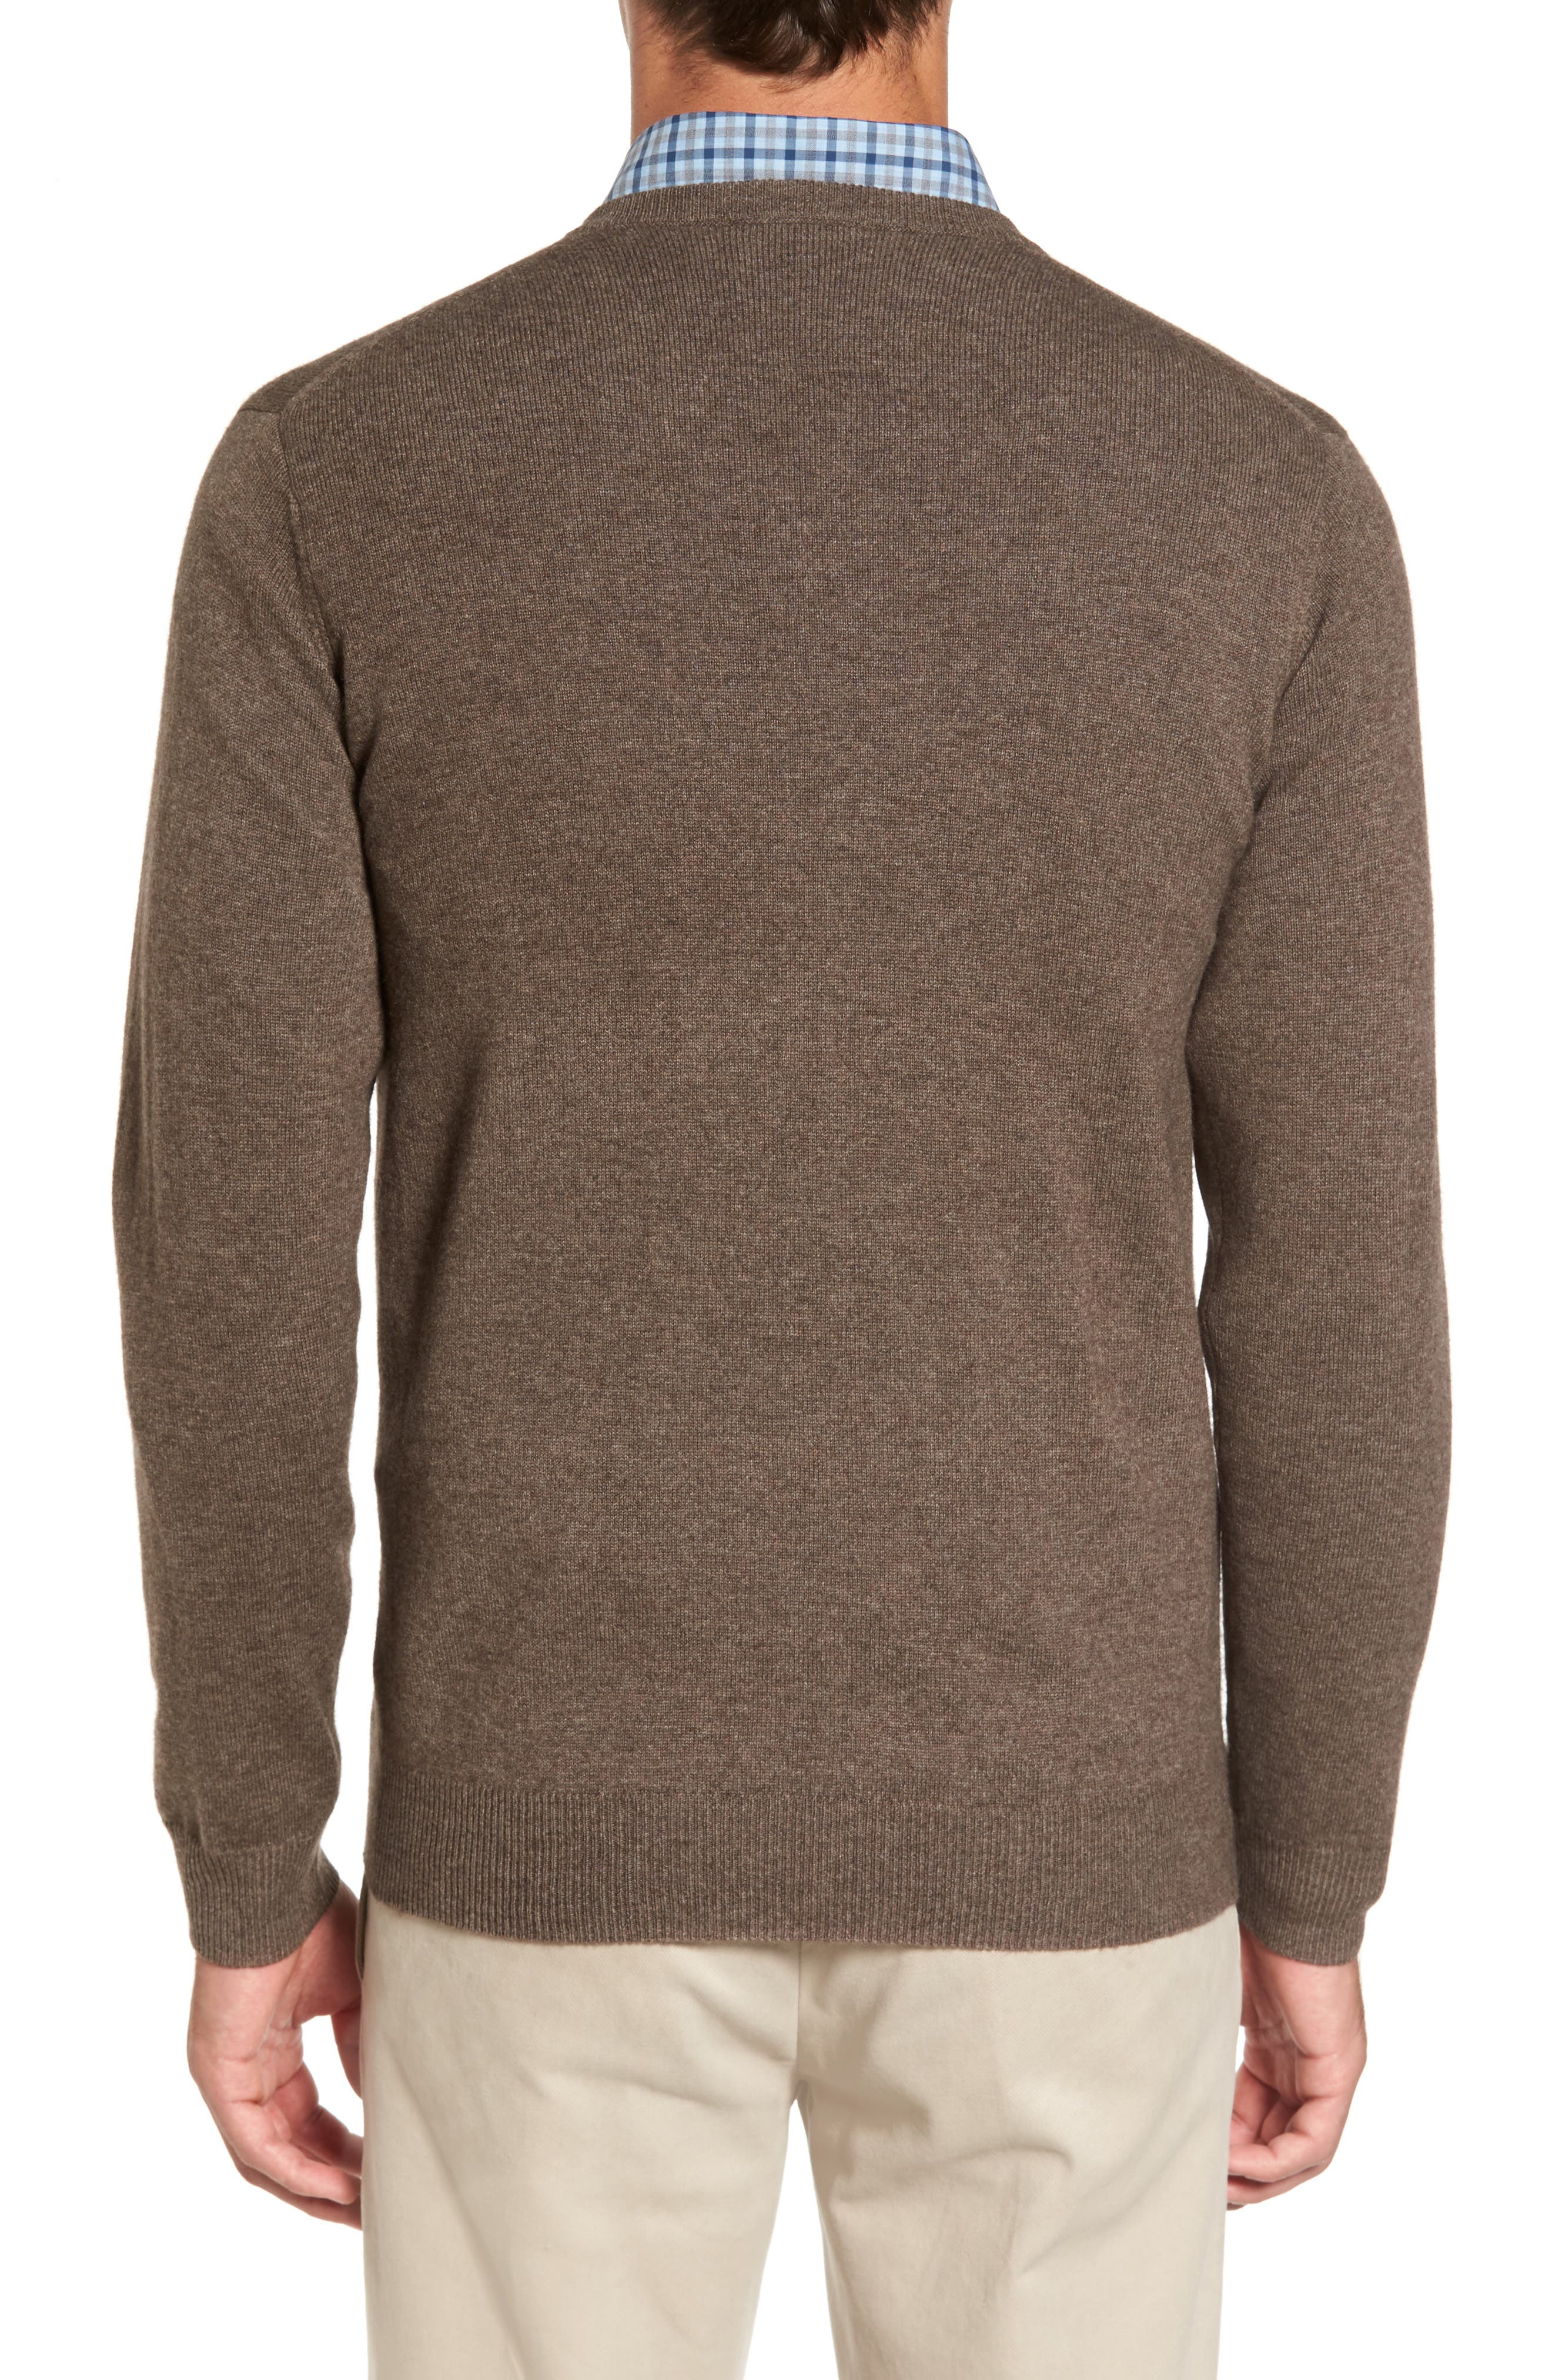 'Inchbonnie' Wool & Cashmere V-Neck Sweater,                             Alternate thumbnail 2, color,                             218